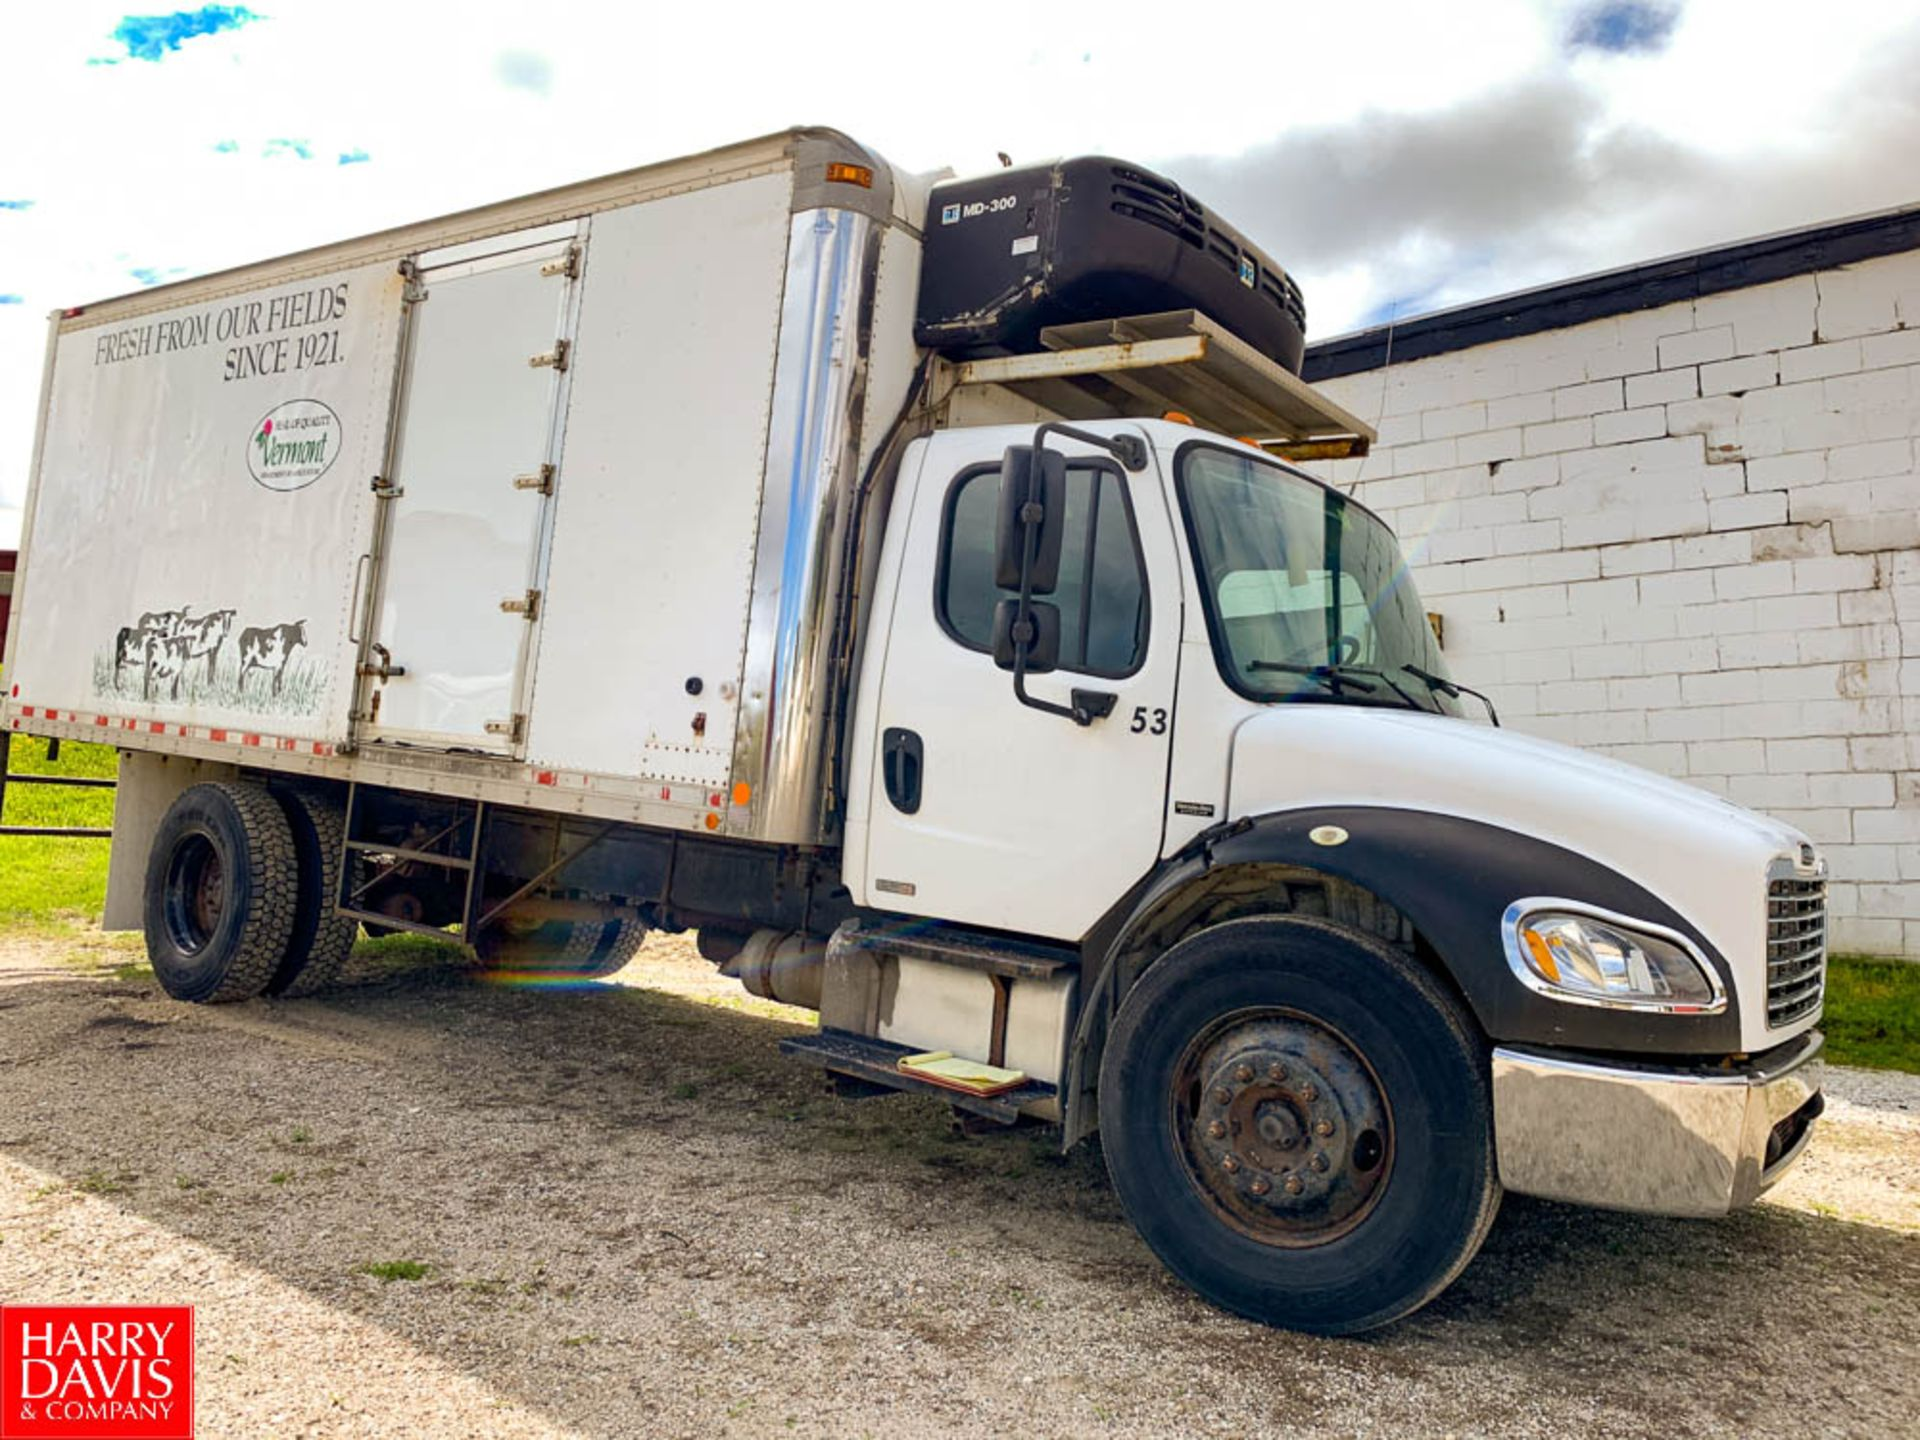 2006 Freightliner 20' Refrigerated Delivery Truck Model: M2106, 25,500 GVWR, Mercedes Benz 6.4 - Image 2 of 7